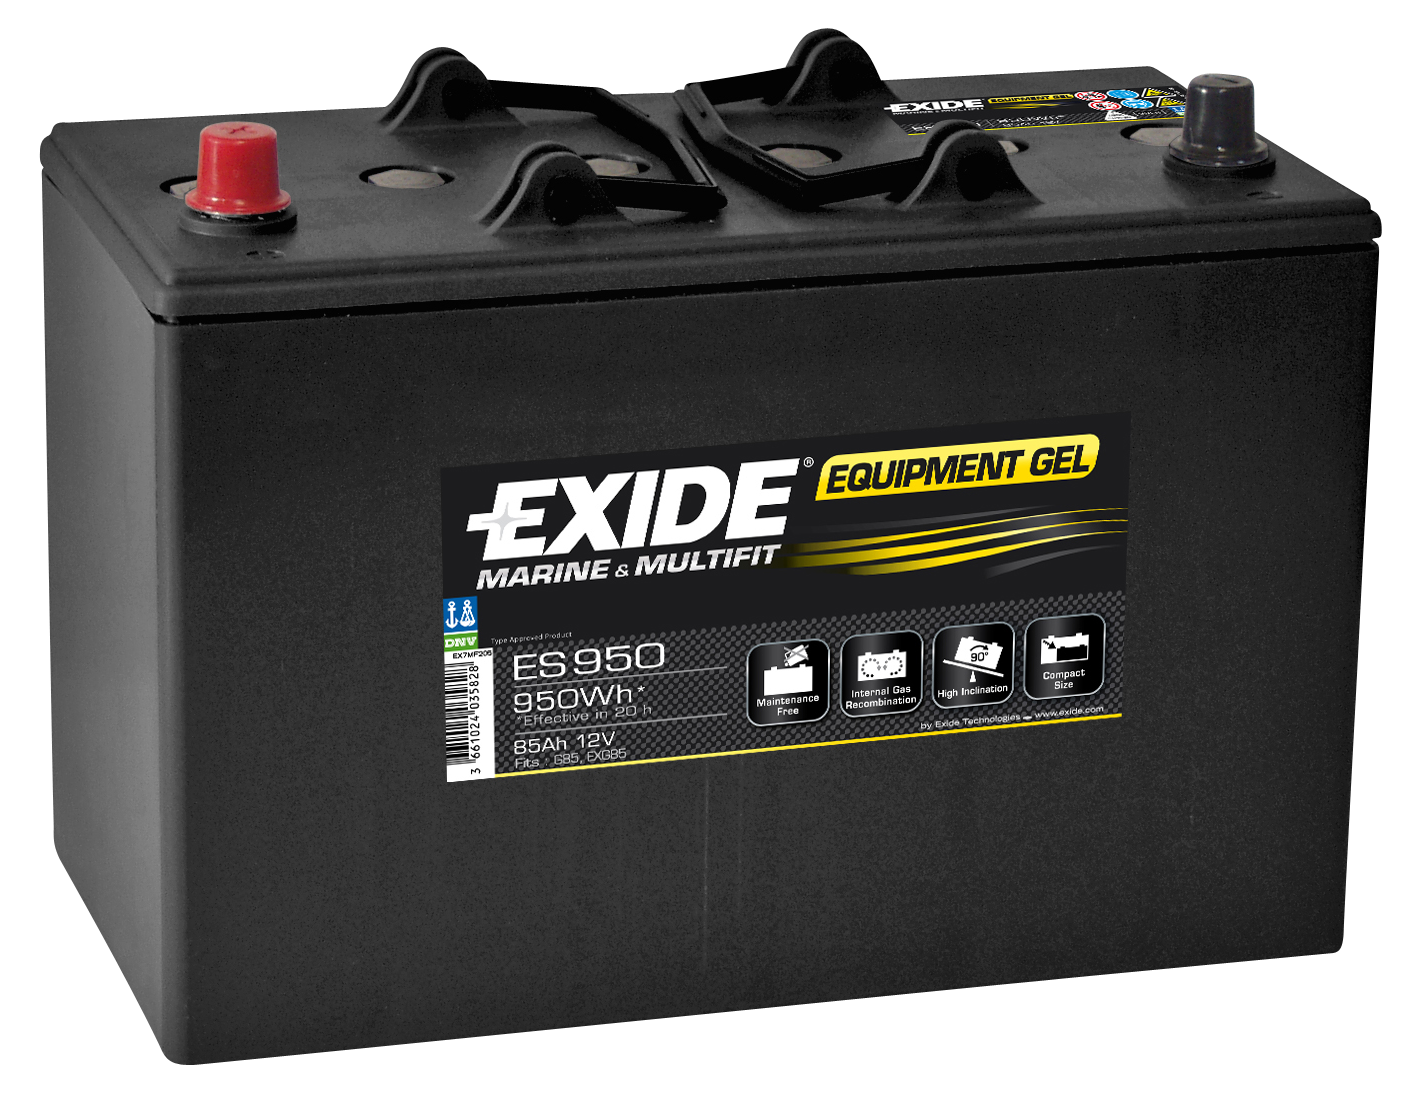 ES950 EXIDE EQUIPMENT GEL